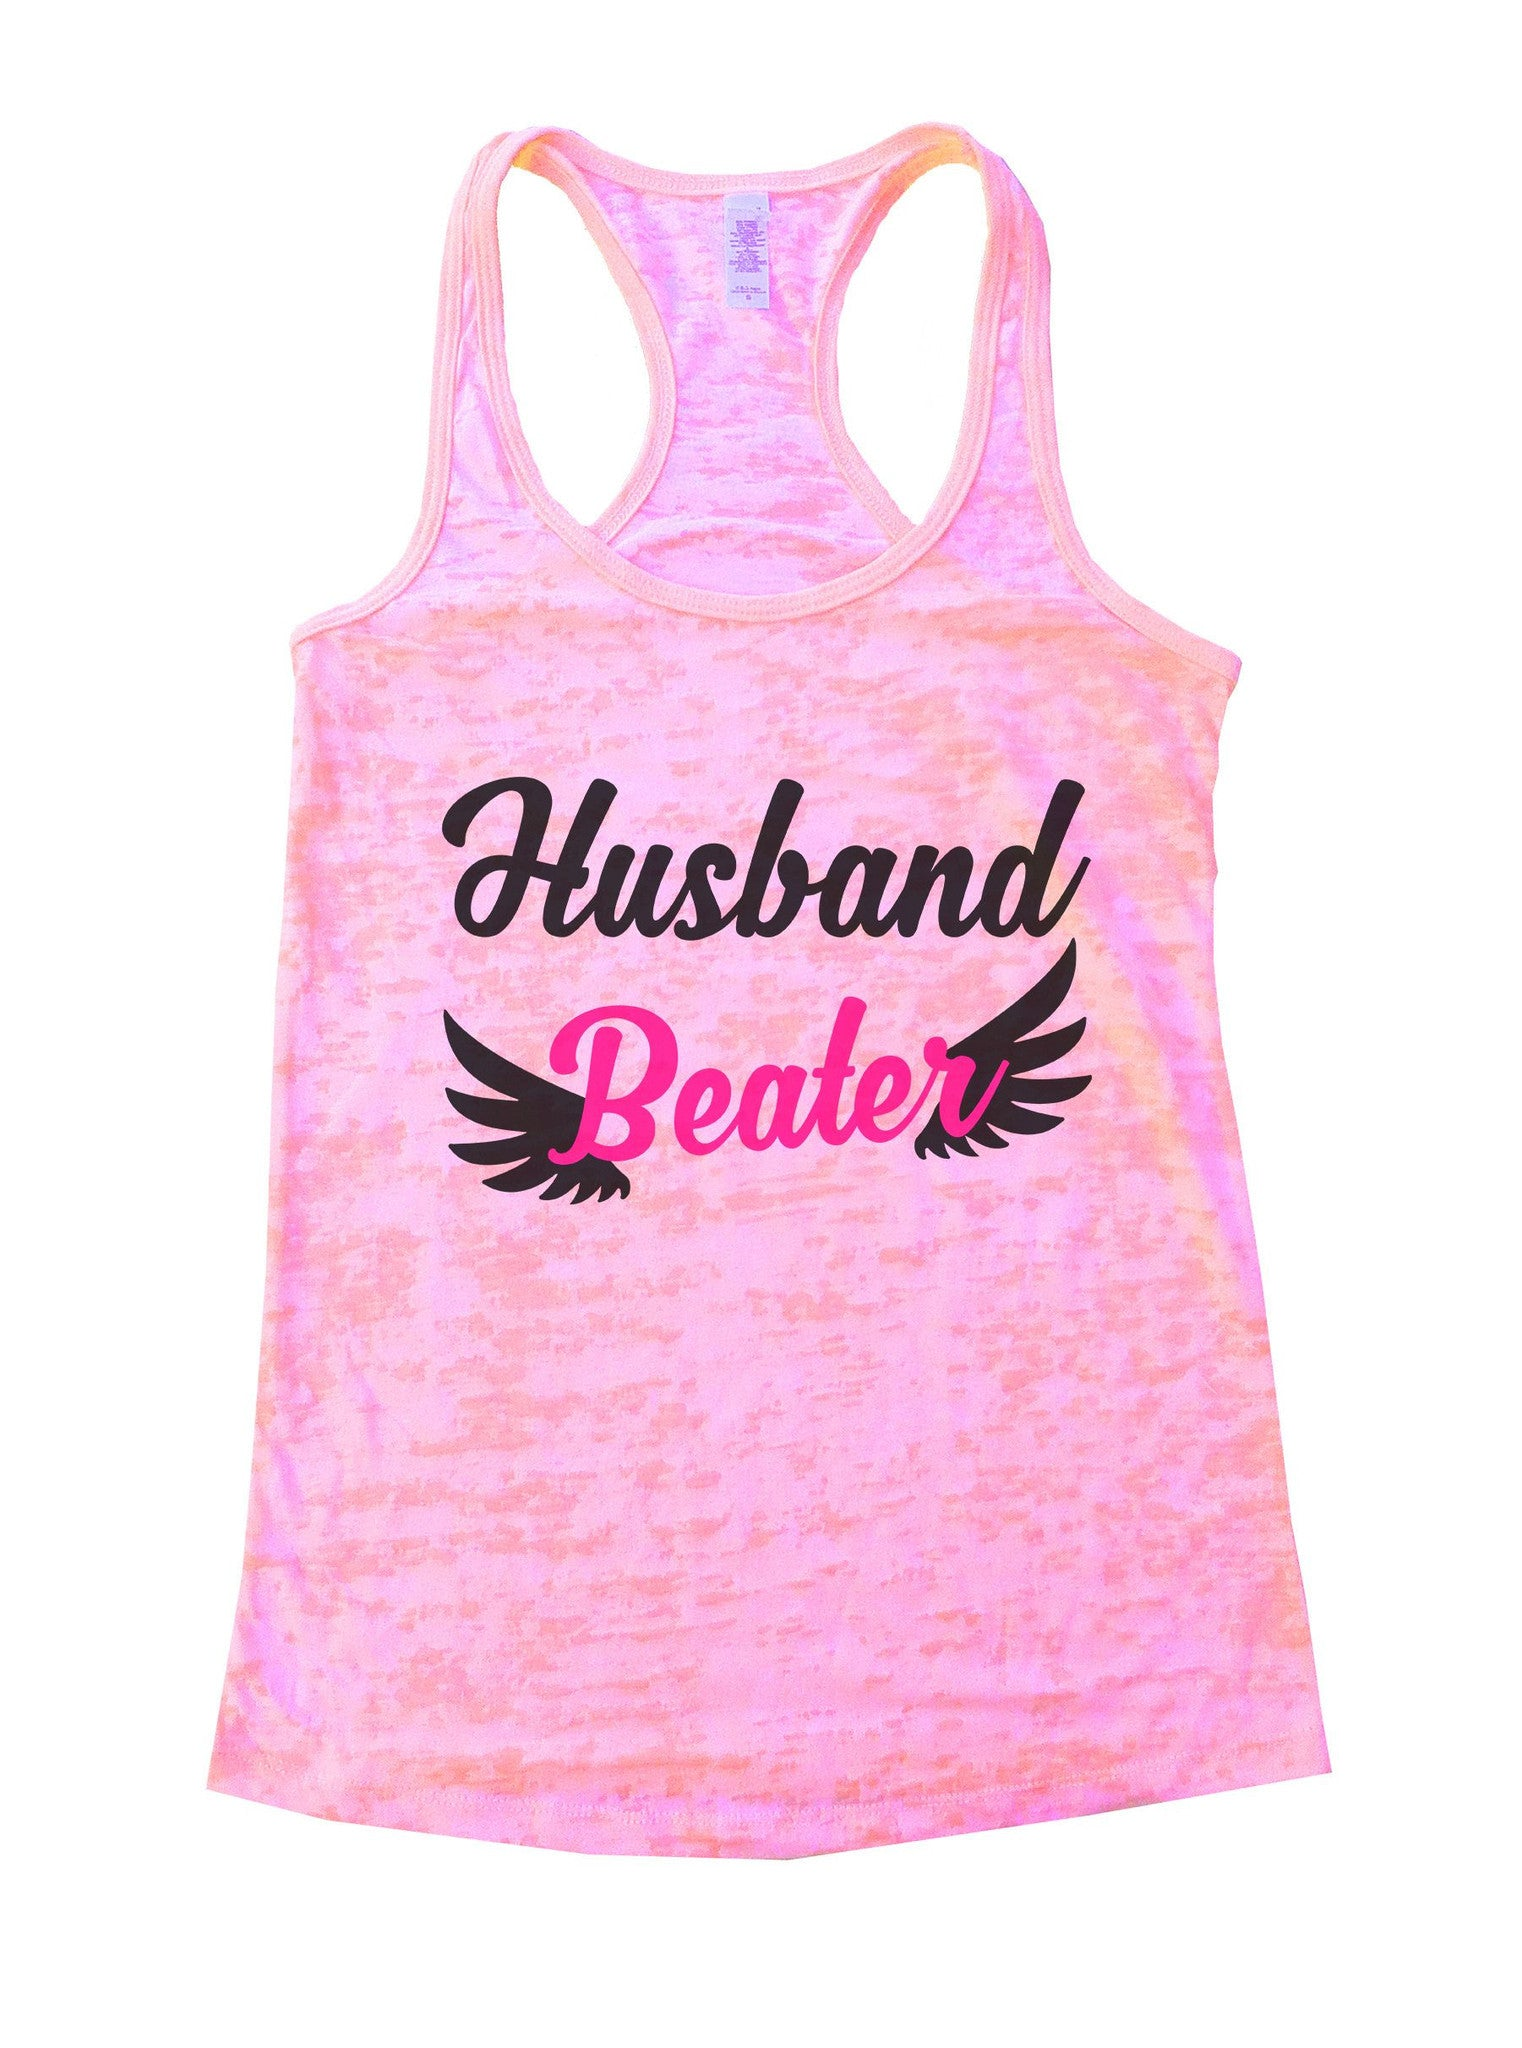 Husband Beater Burnout Tank Top By BurnoutTankTops.com - 1067 - Funny Shirts Tank Tops Burnouts and Triblends  - 2